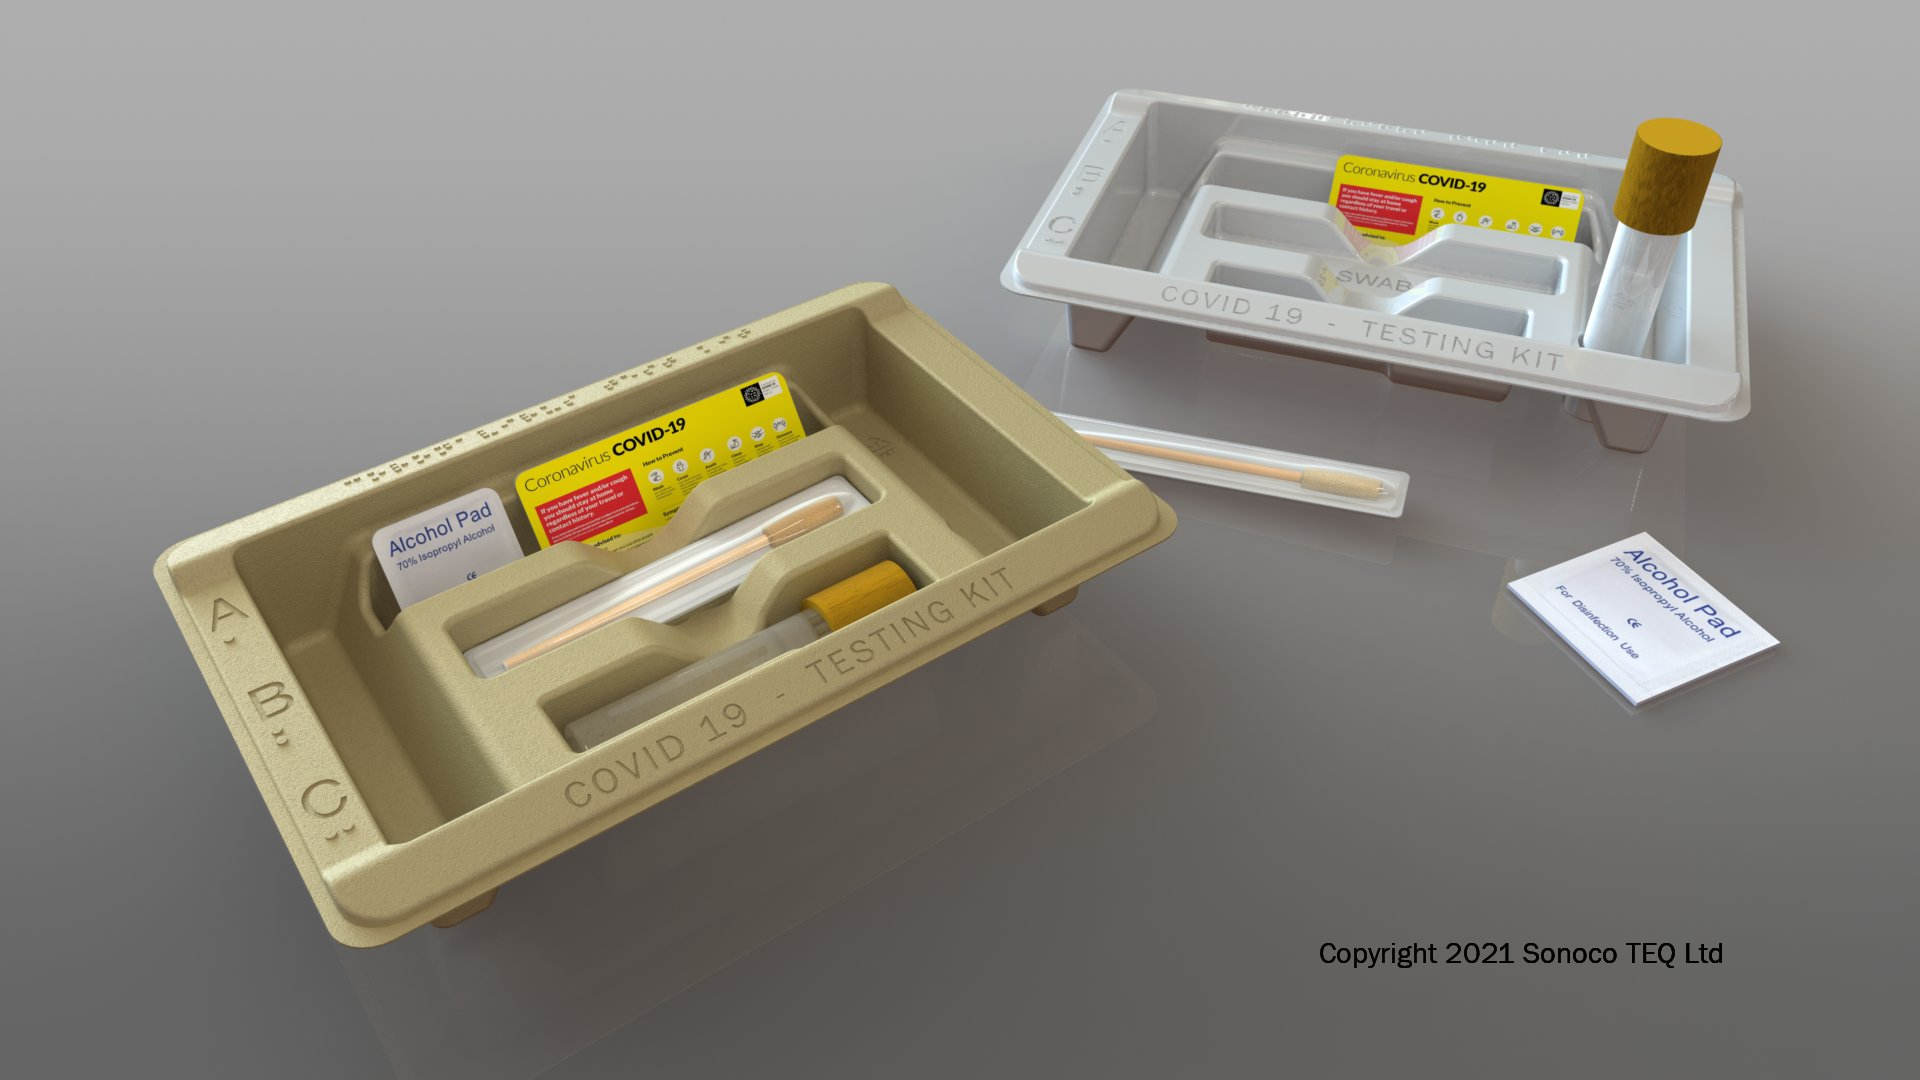 TEQ's COVID-19 testing kits boosted by enhanced presentation and component protection